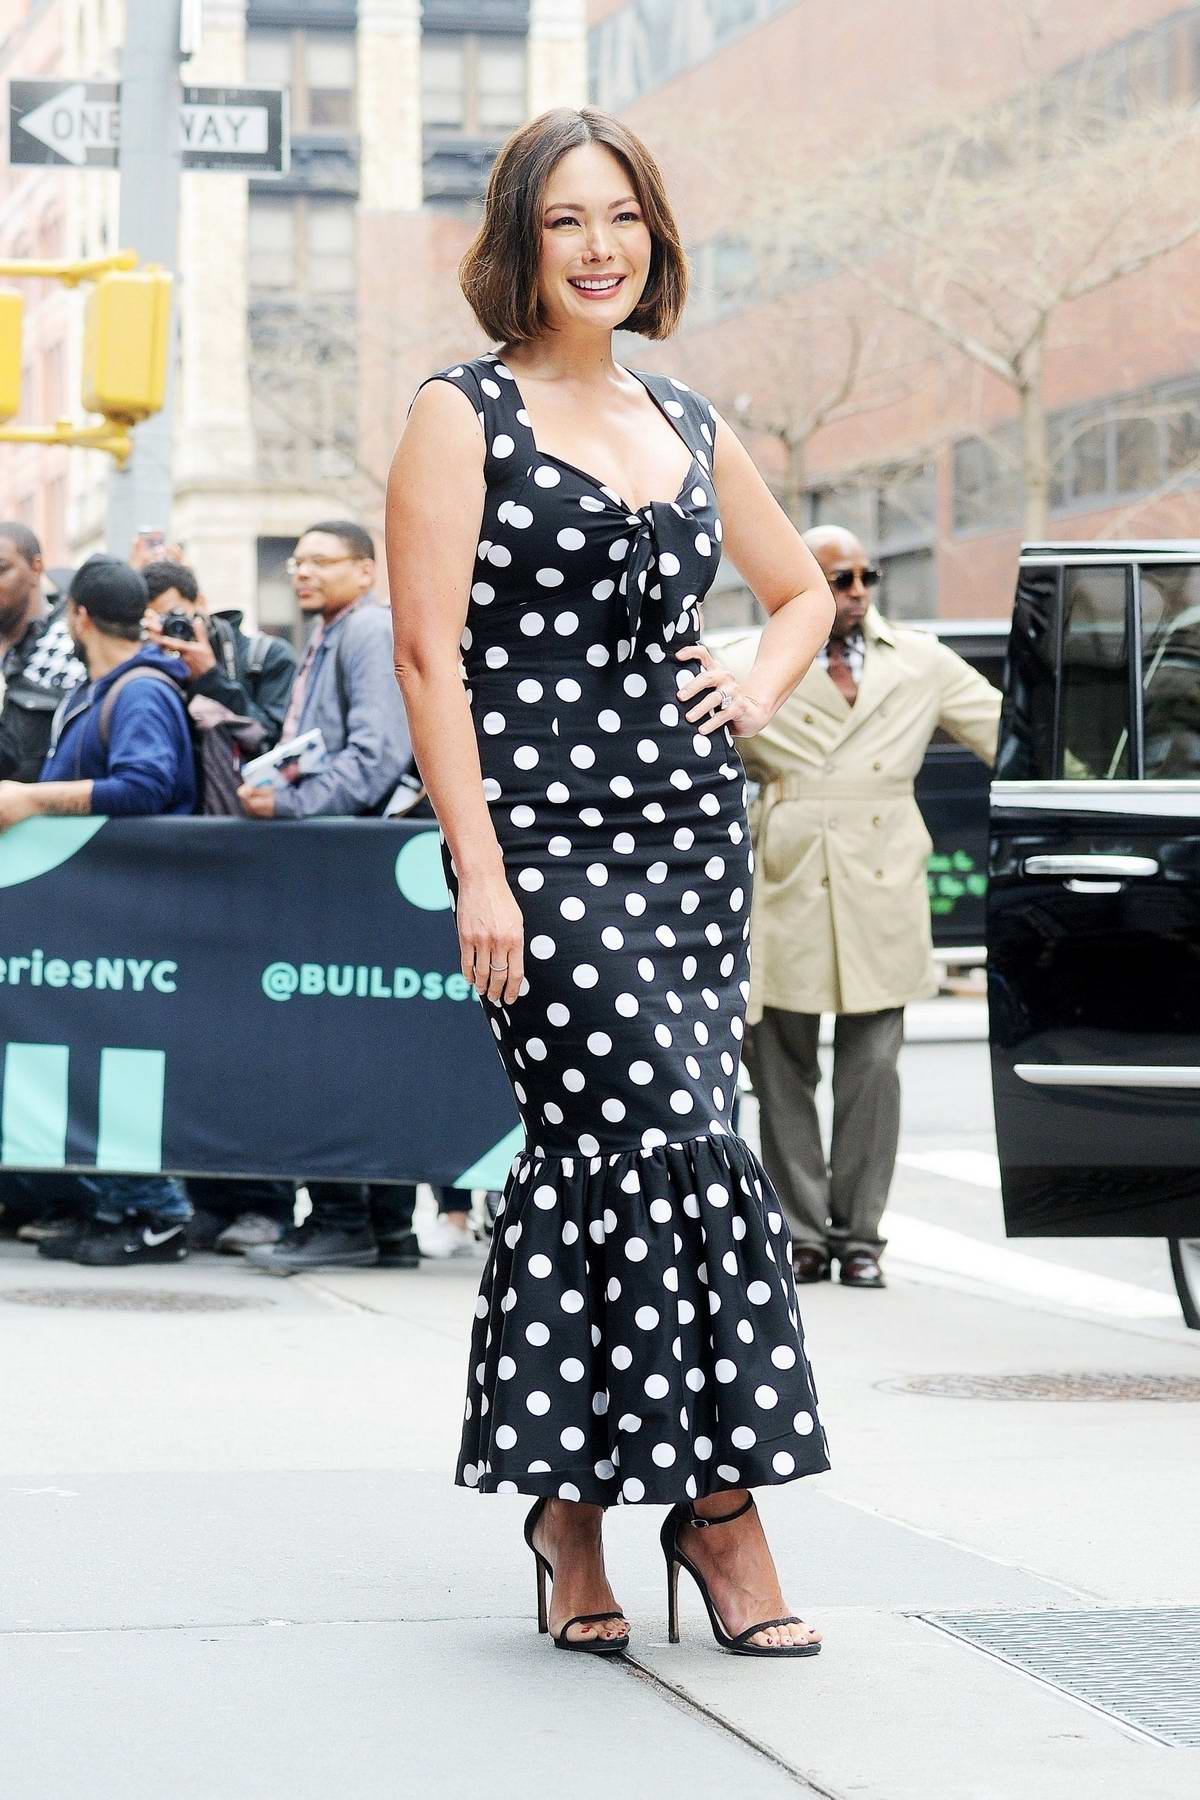 Lindsay Price wears black and white polka dots as she promotes 'Splitting Up Together' at AOL Build series in New York City